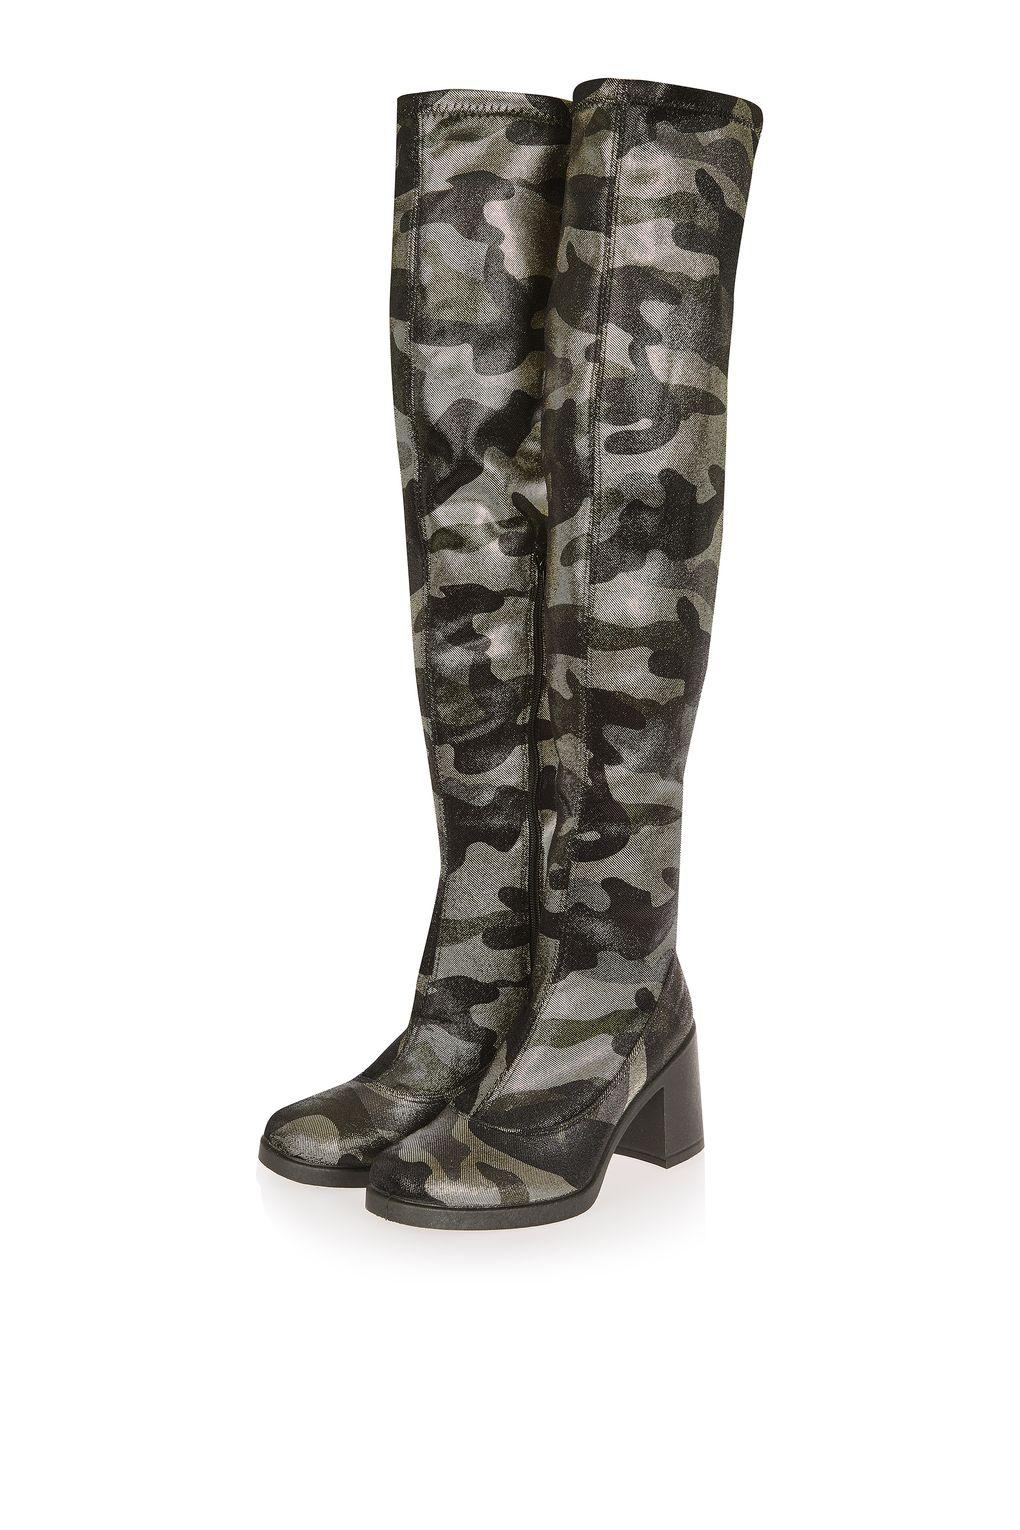 TOPSHOP Cupid Camouflage Hi Leg Boots in Green